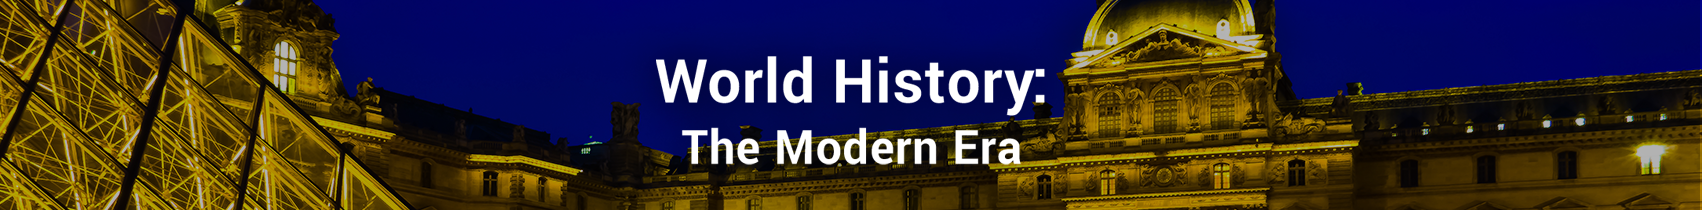 ABC-CLIO Solutions - World History: The Modern Era